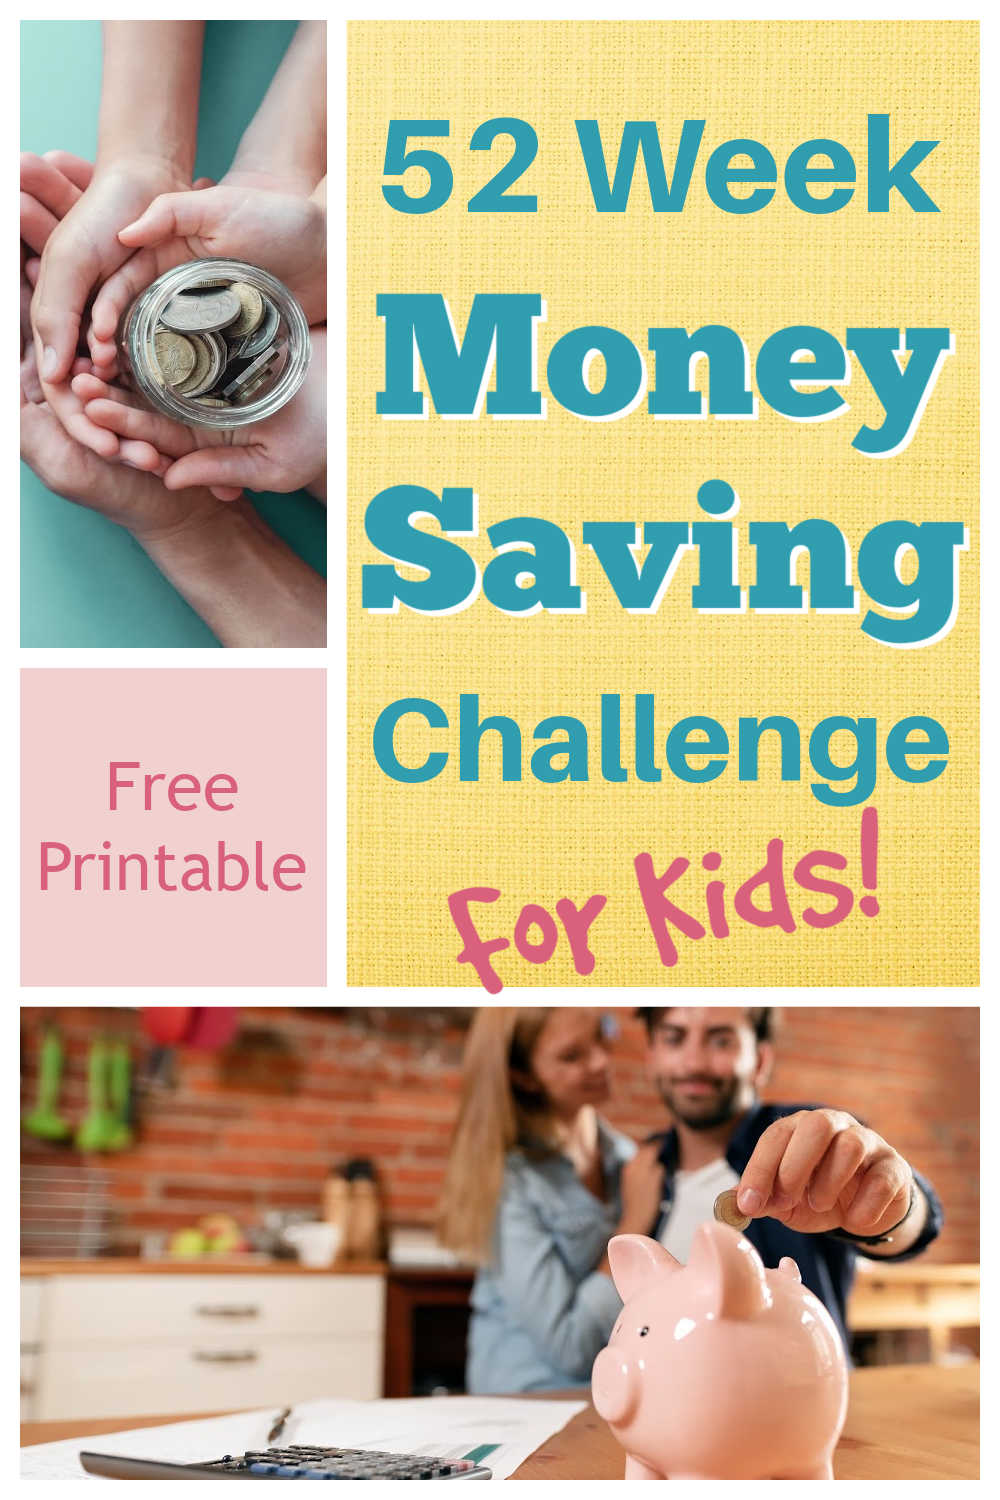 Kids 52 Week Money Savings Challenge {Free Printable}